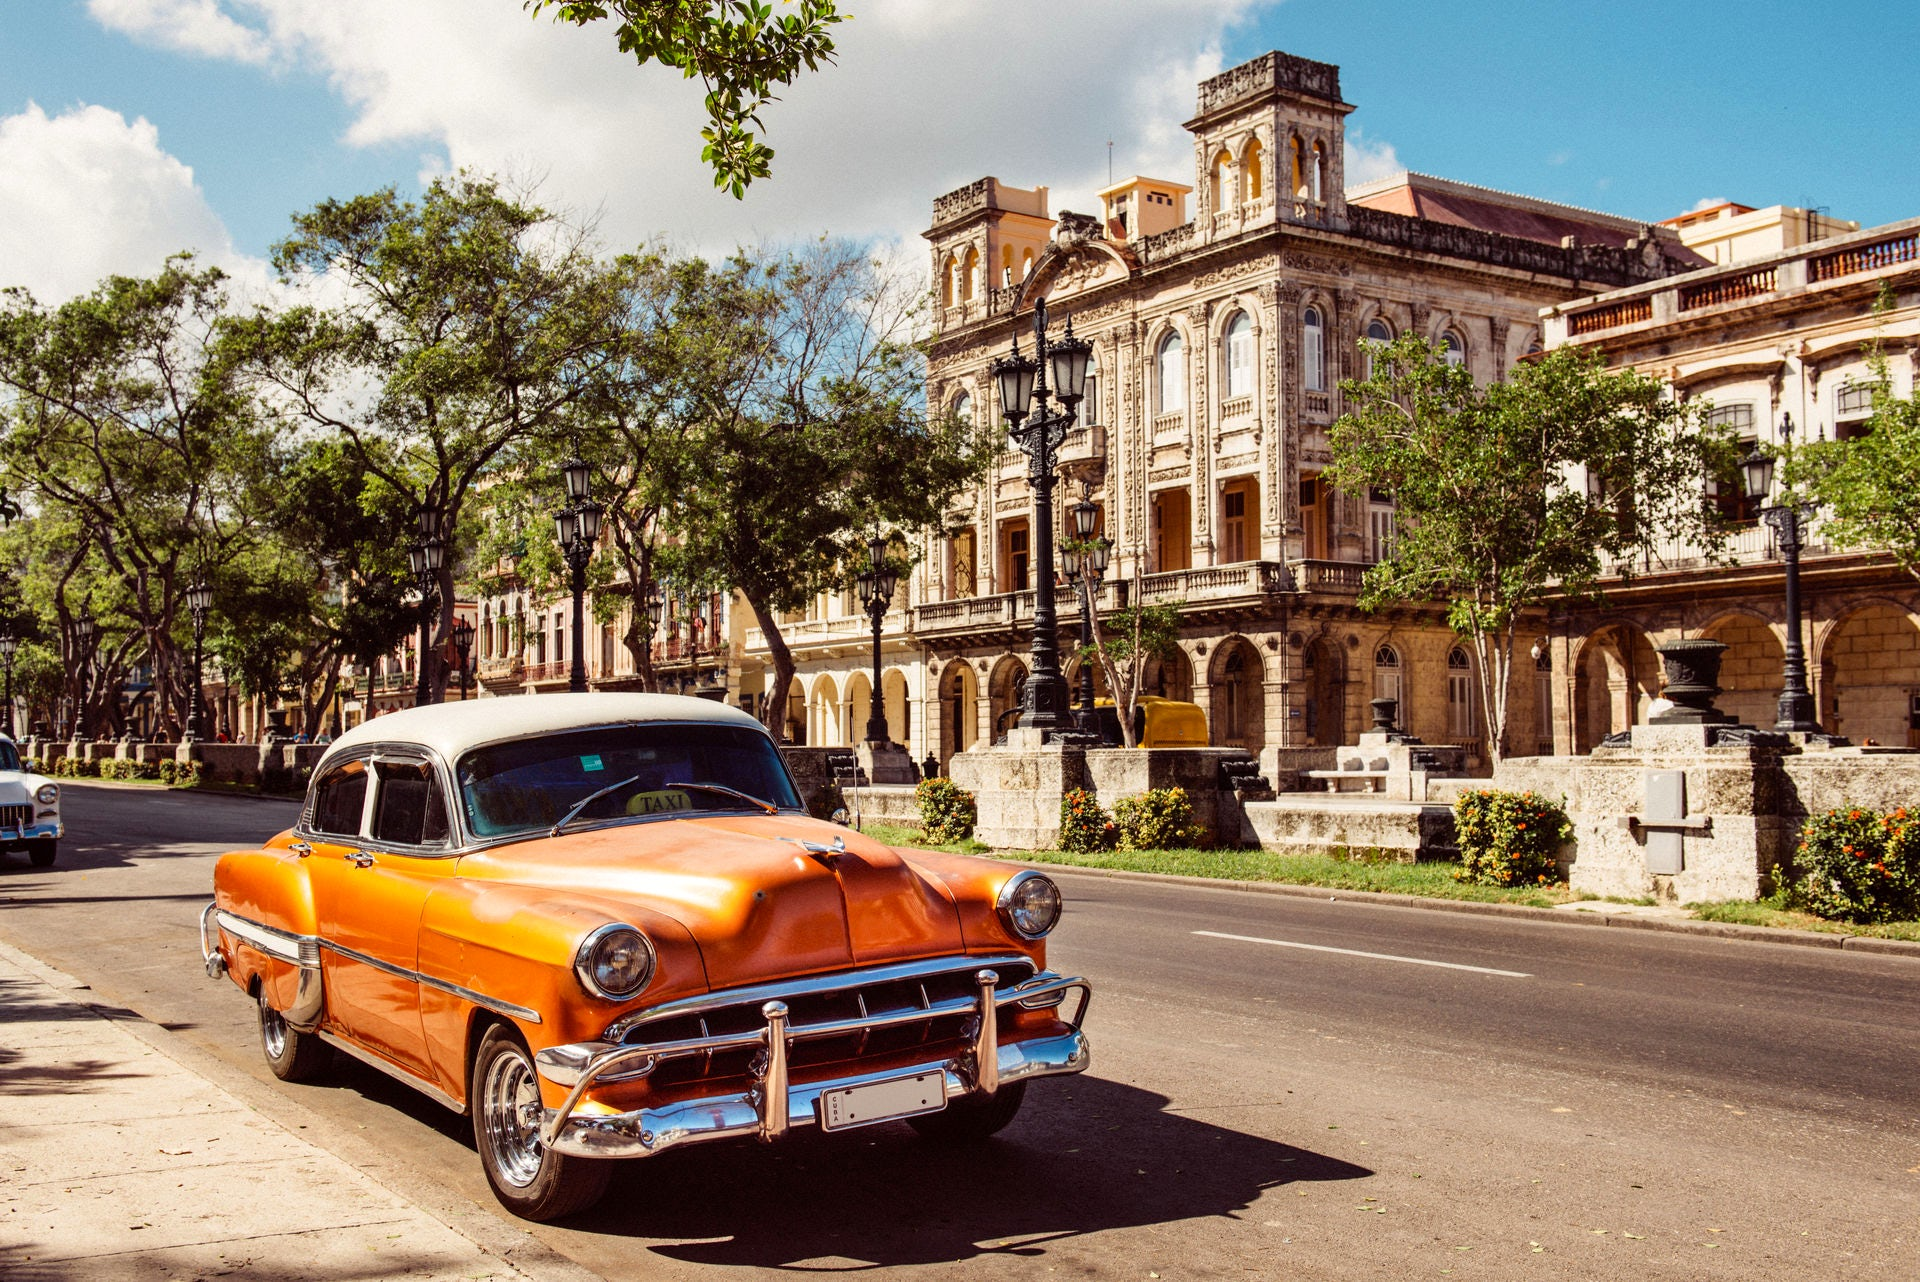 Cuban History,Culture, and Contemporary Life: A People-to-People Educational Experience